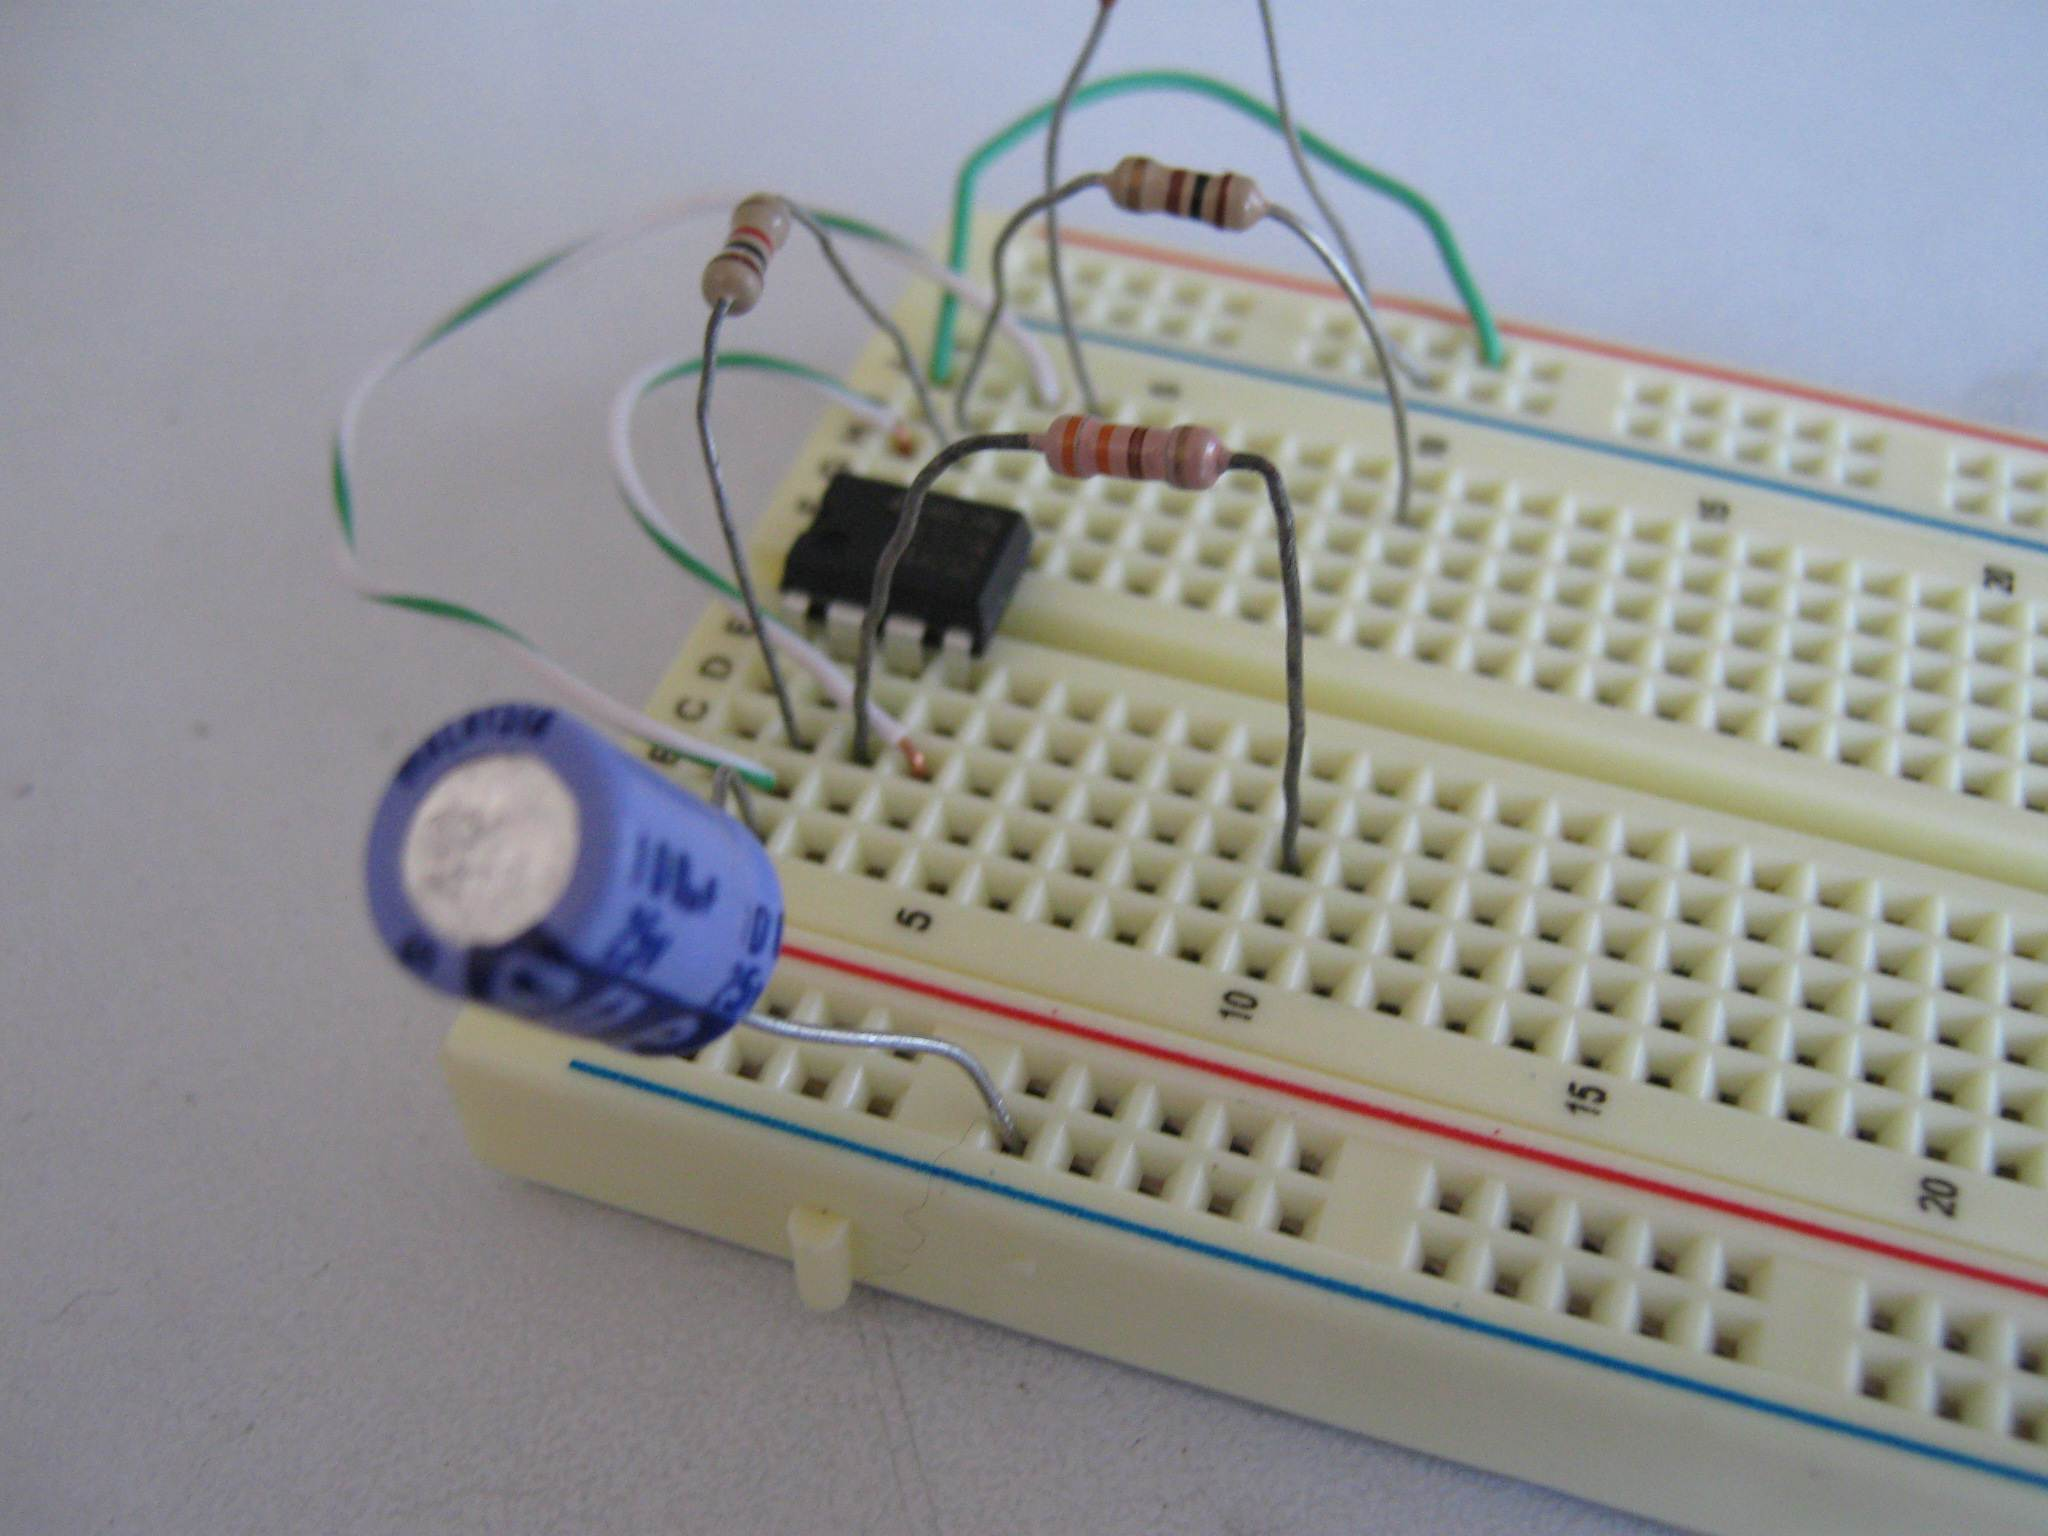 Picture of Connect LM555